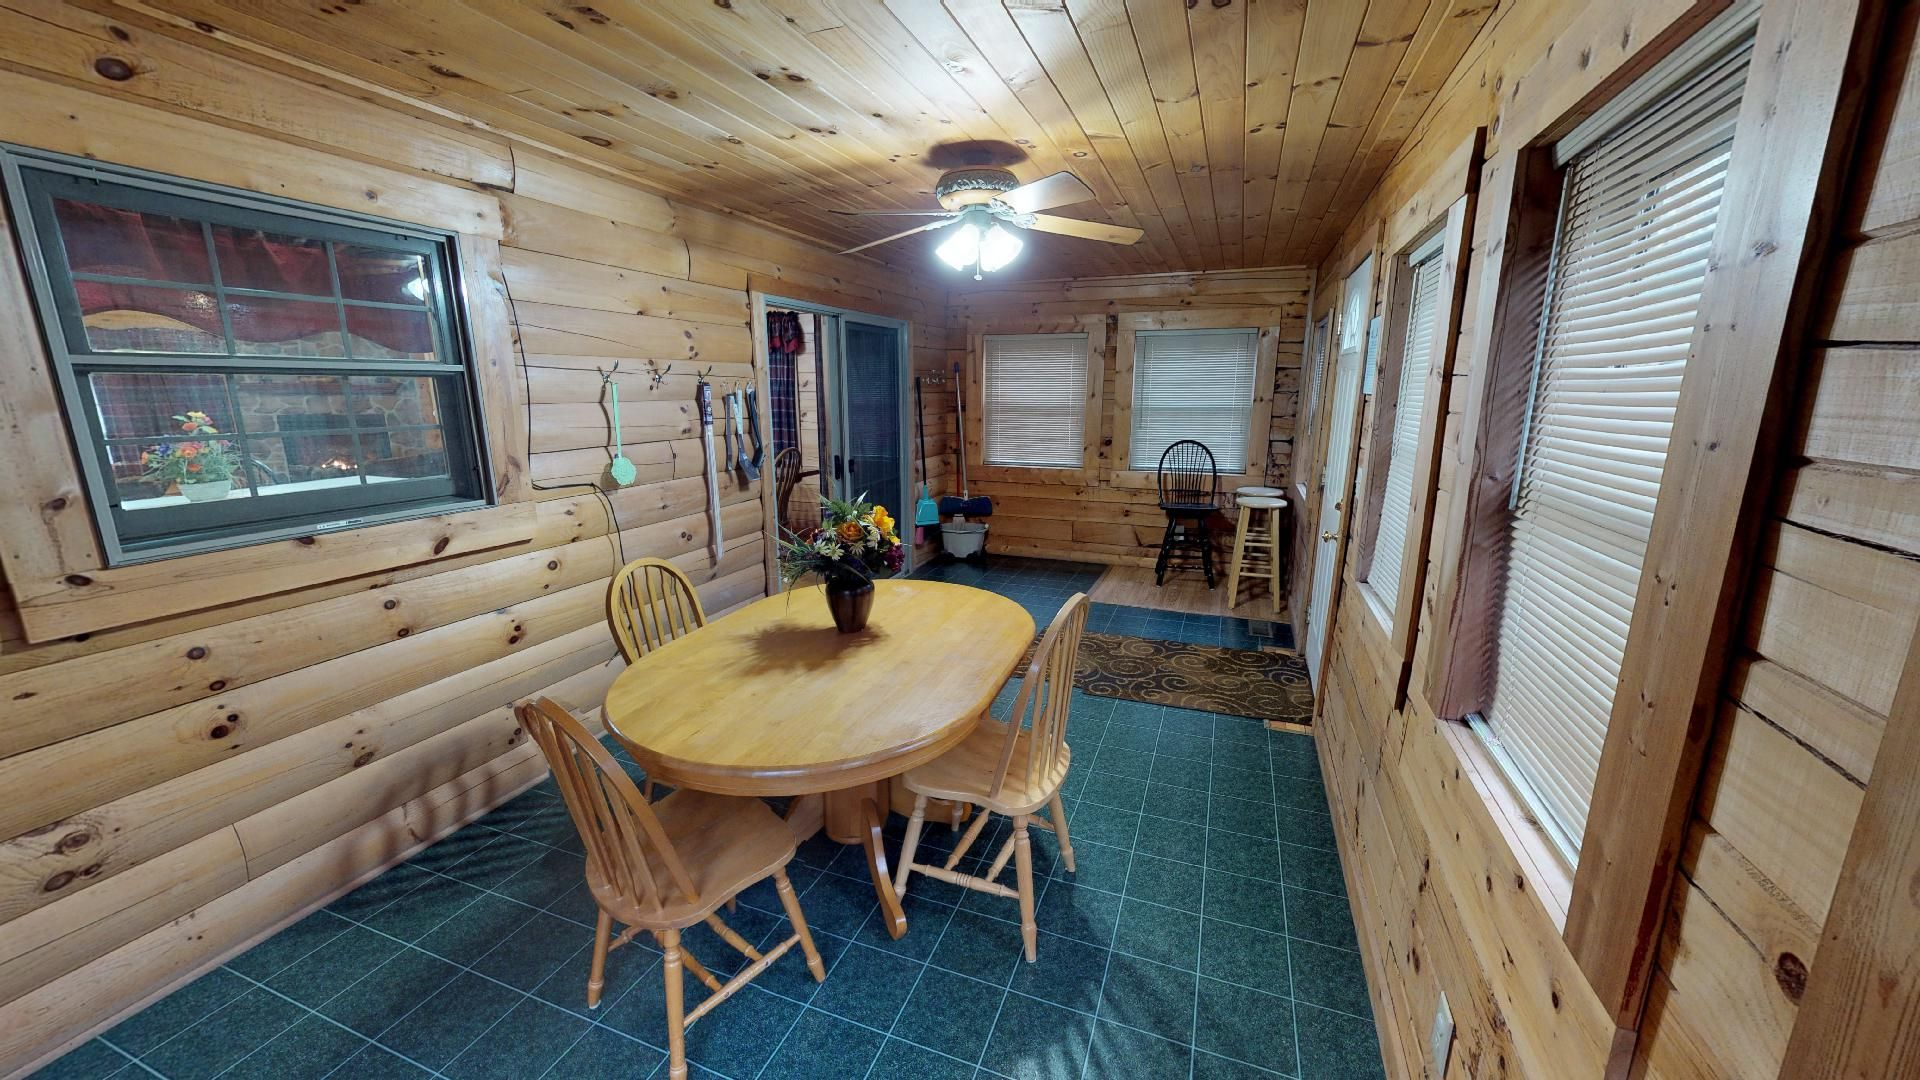 Sunrise 3 season Porch - Enjoy dining all the seasons in this enclosed porch area.